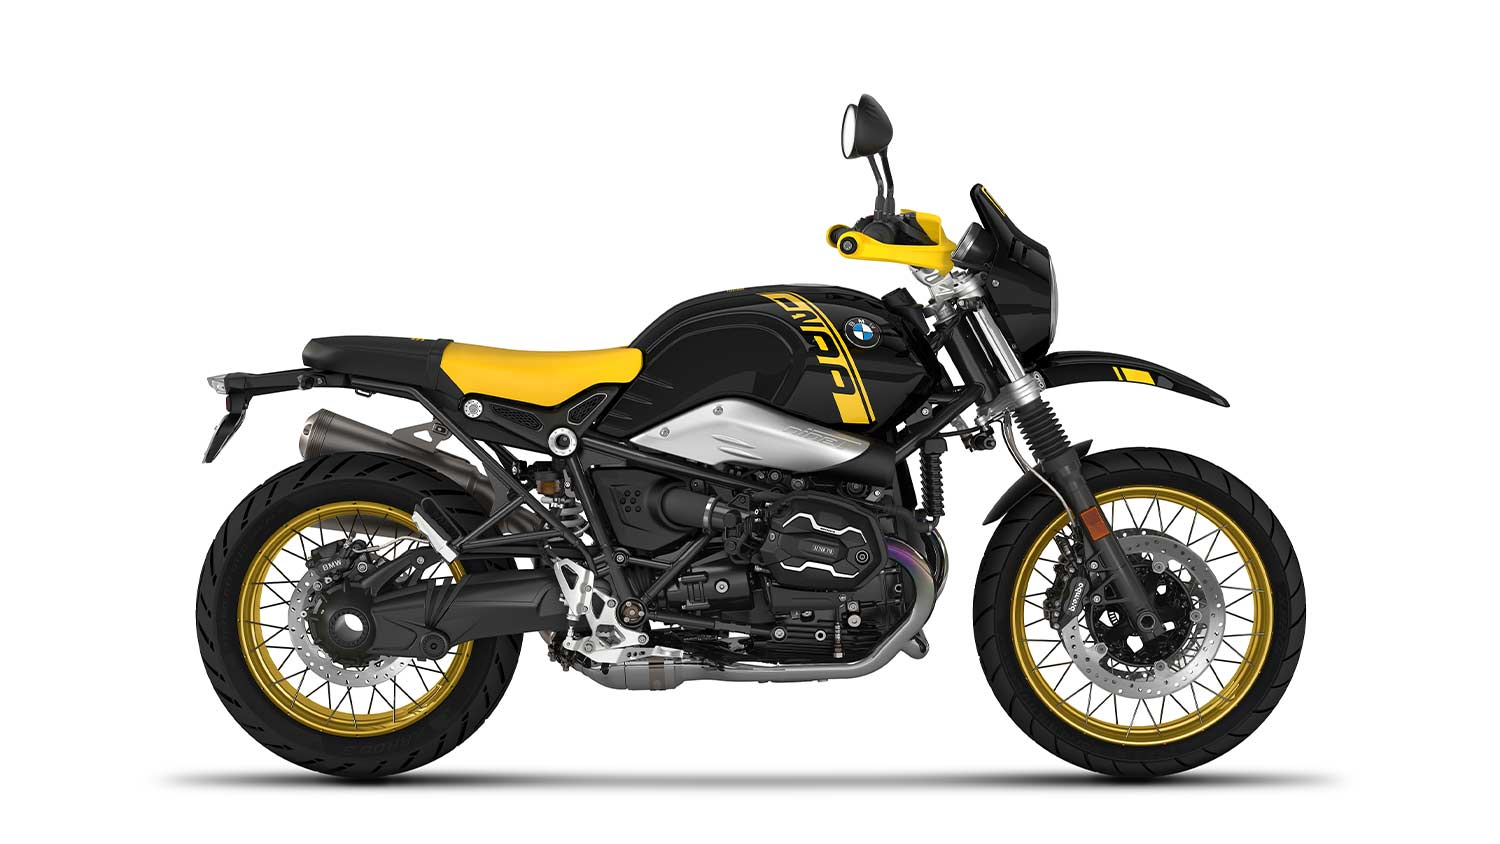 R NineT Urban GS Edition